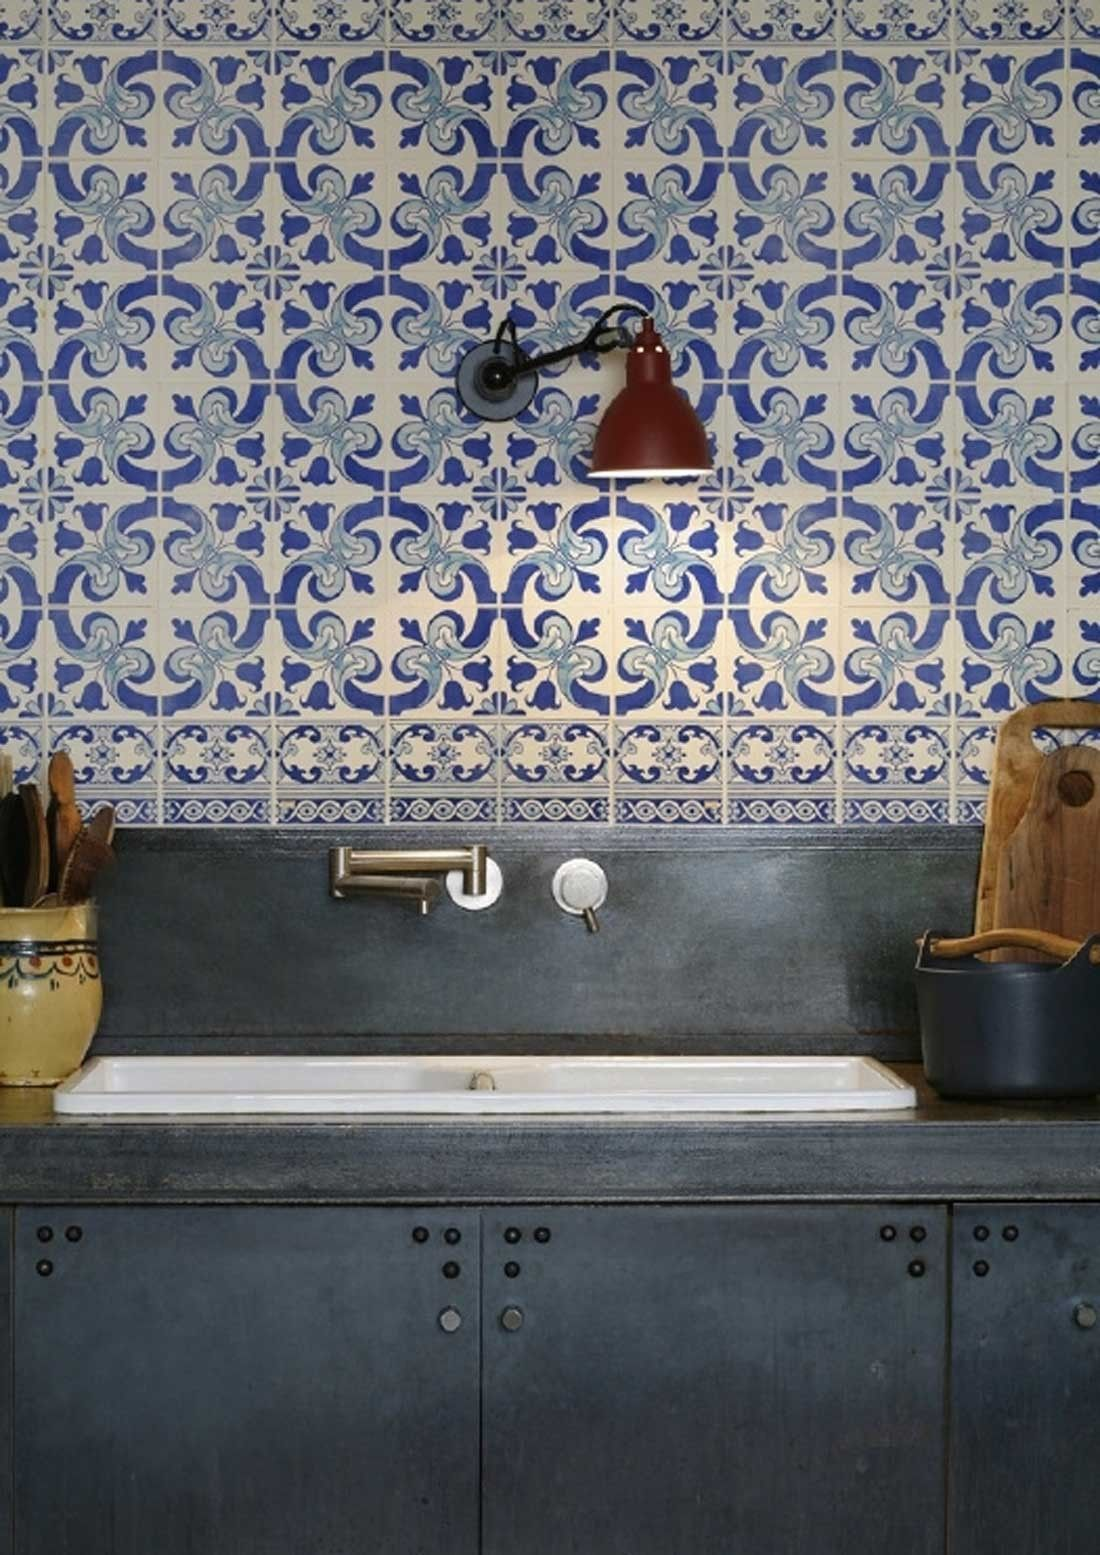 The KitchenWalls Wallpaper Splashback- Delft is beautifully nostalgic. Just like the real delfts blue tiles, this unbreakable PVC wallpaper with eco UV resistant print